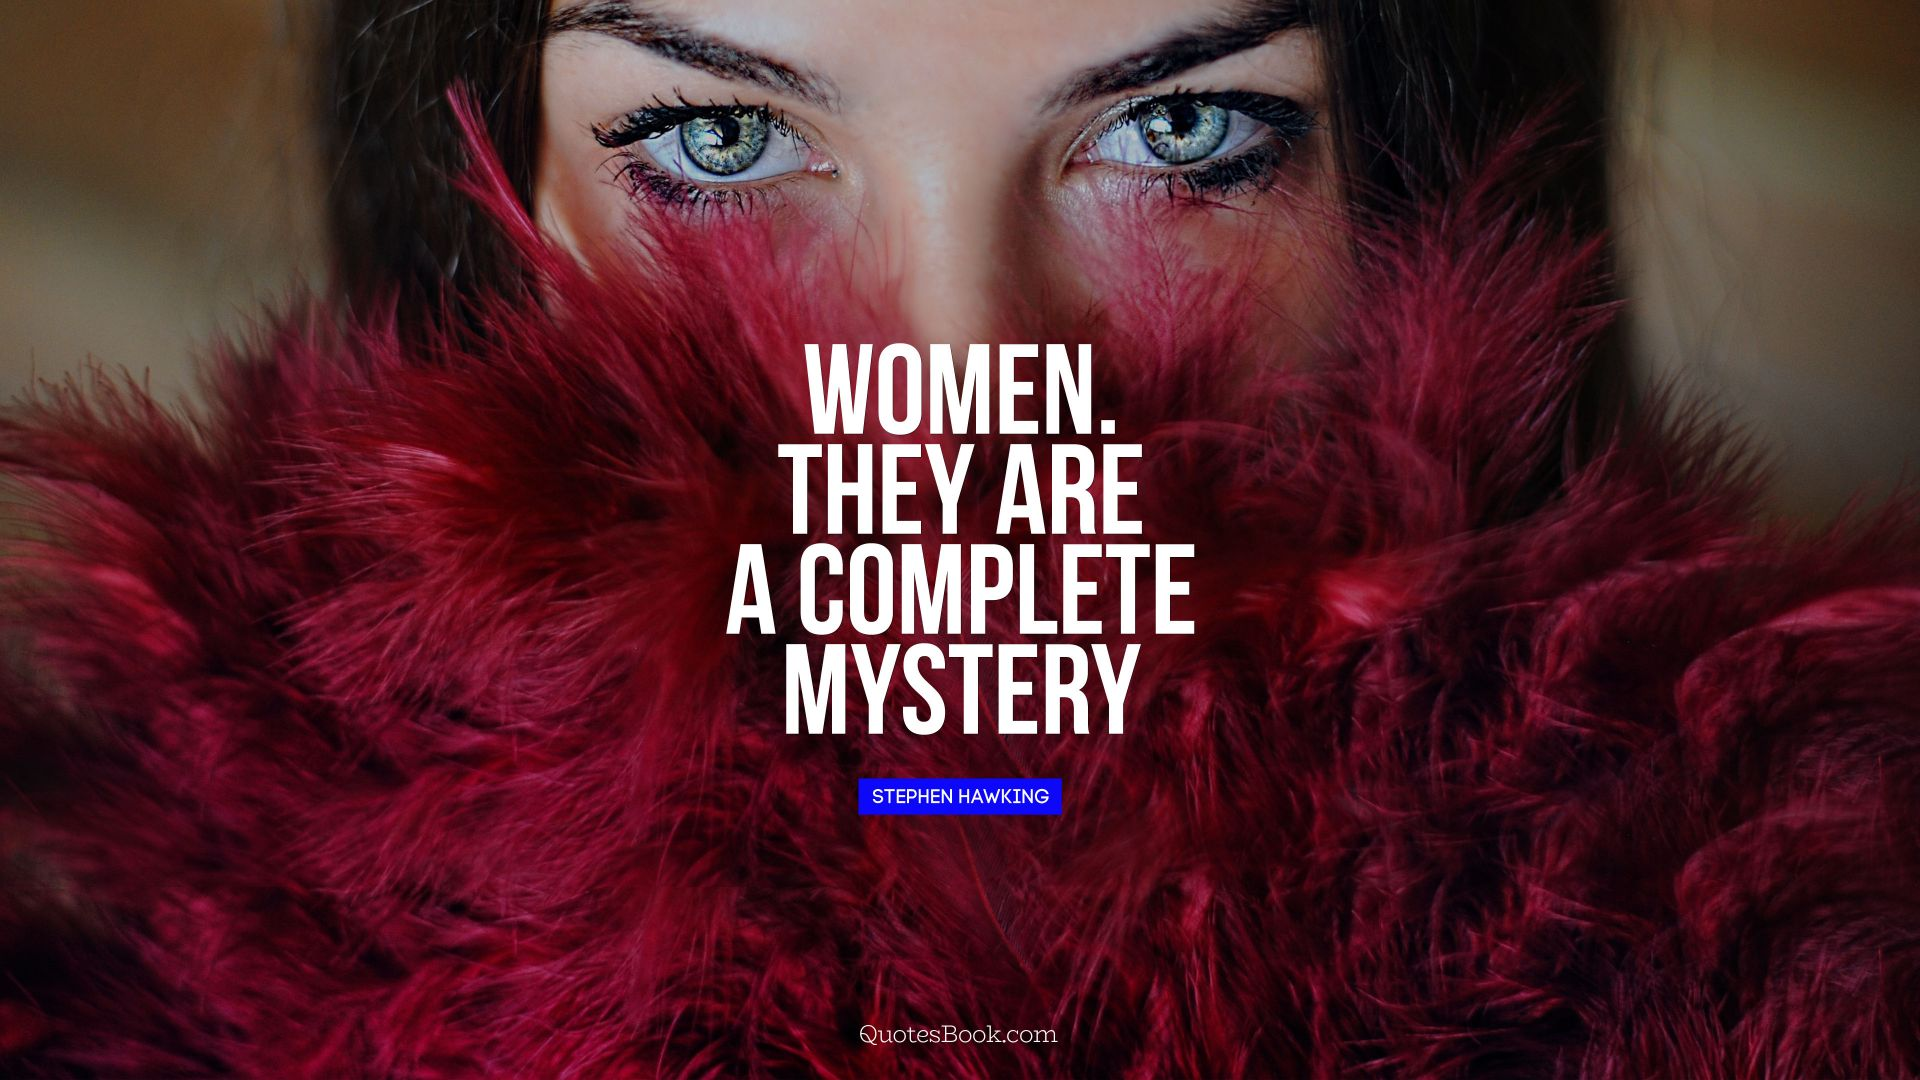 Women. They are a complete mystery. - Quote by Stephen Hawking